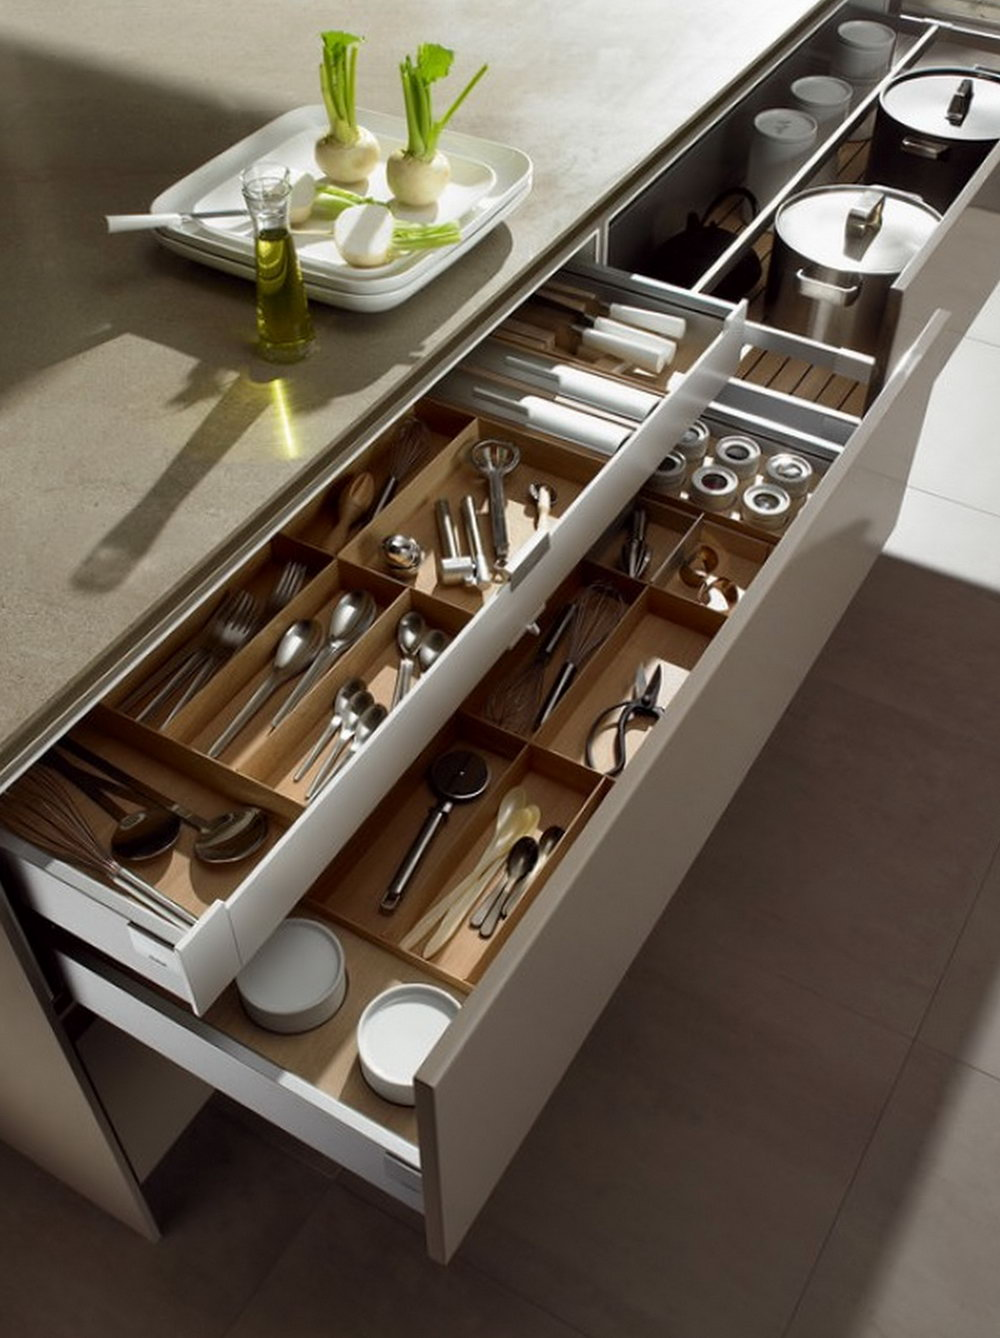 How To Arrange Kitchen Cabinets And Drawers